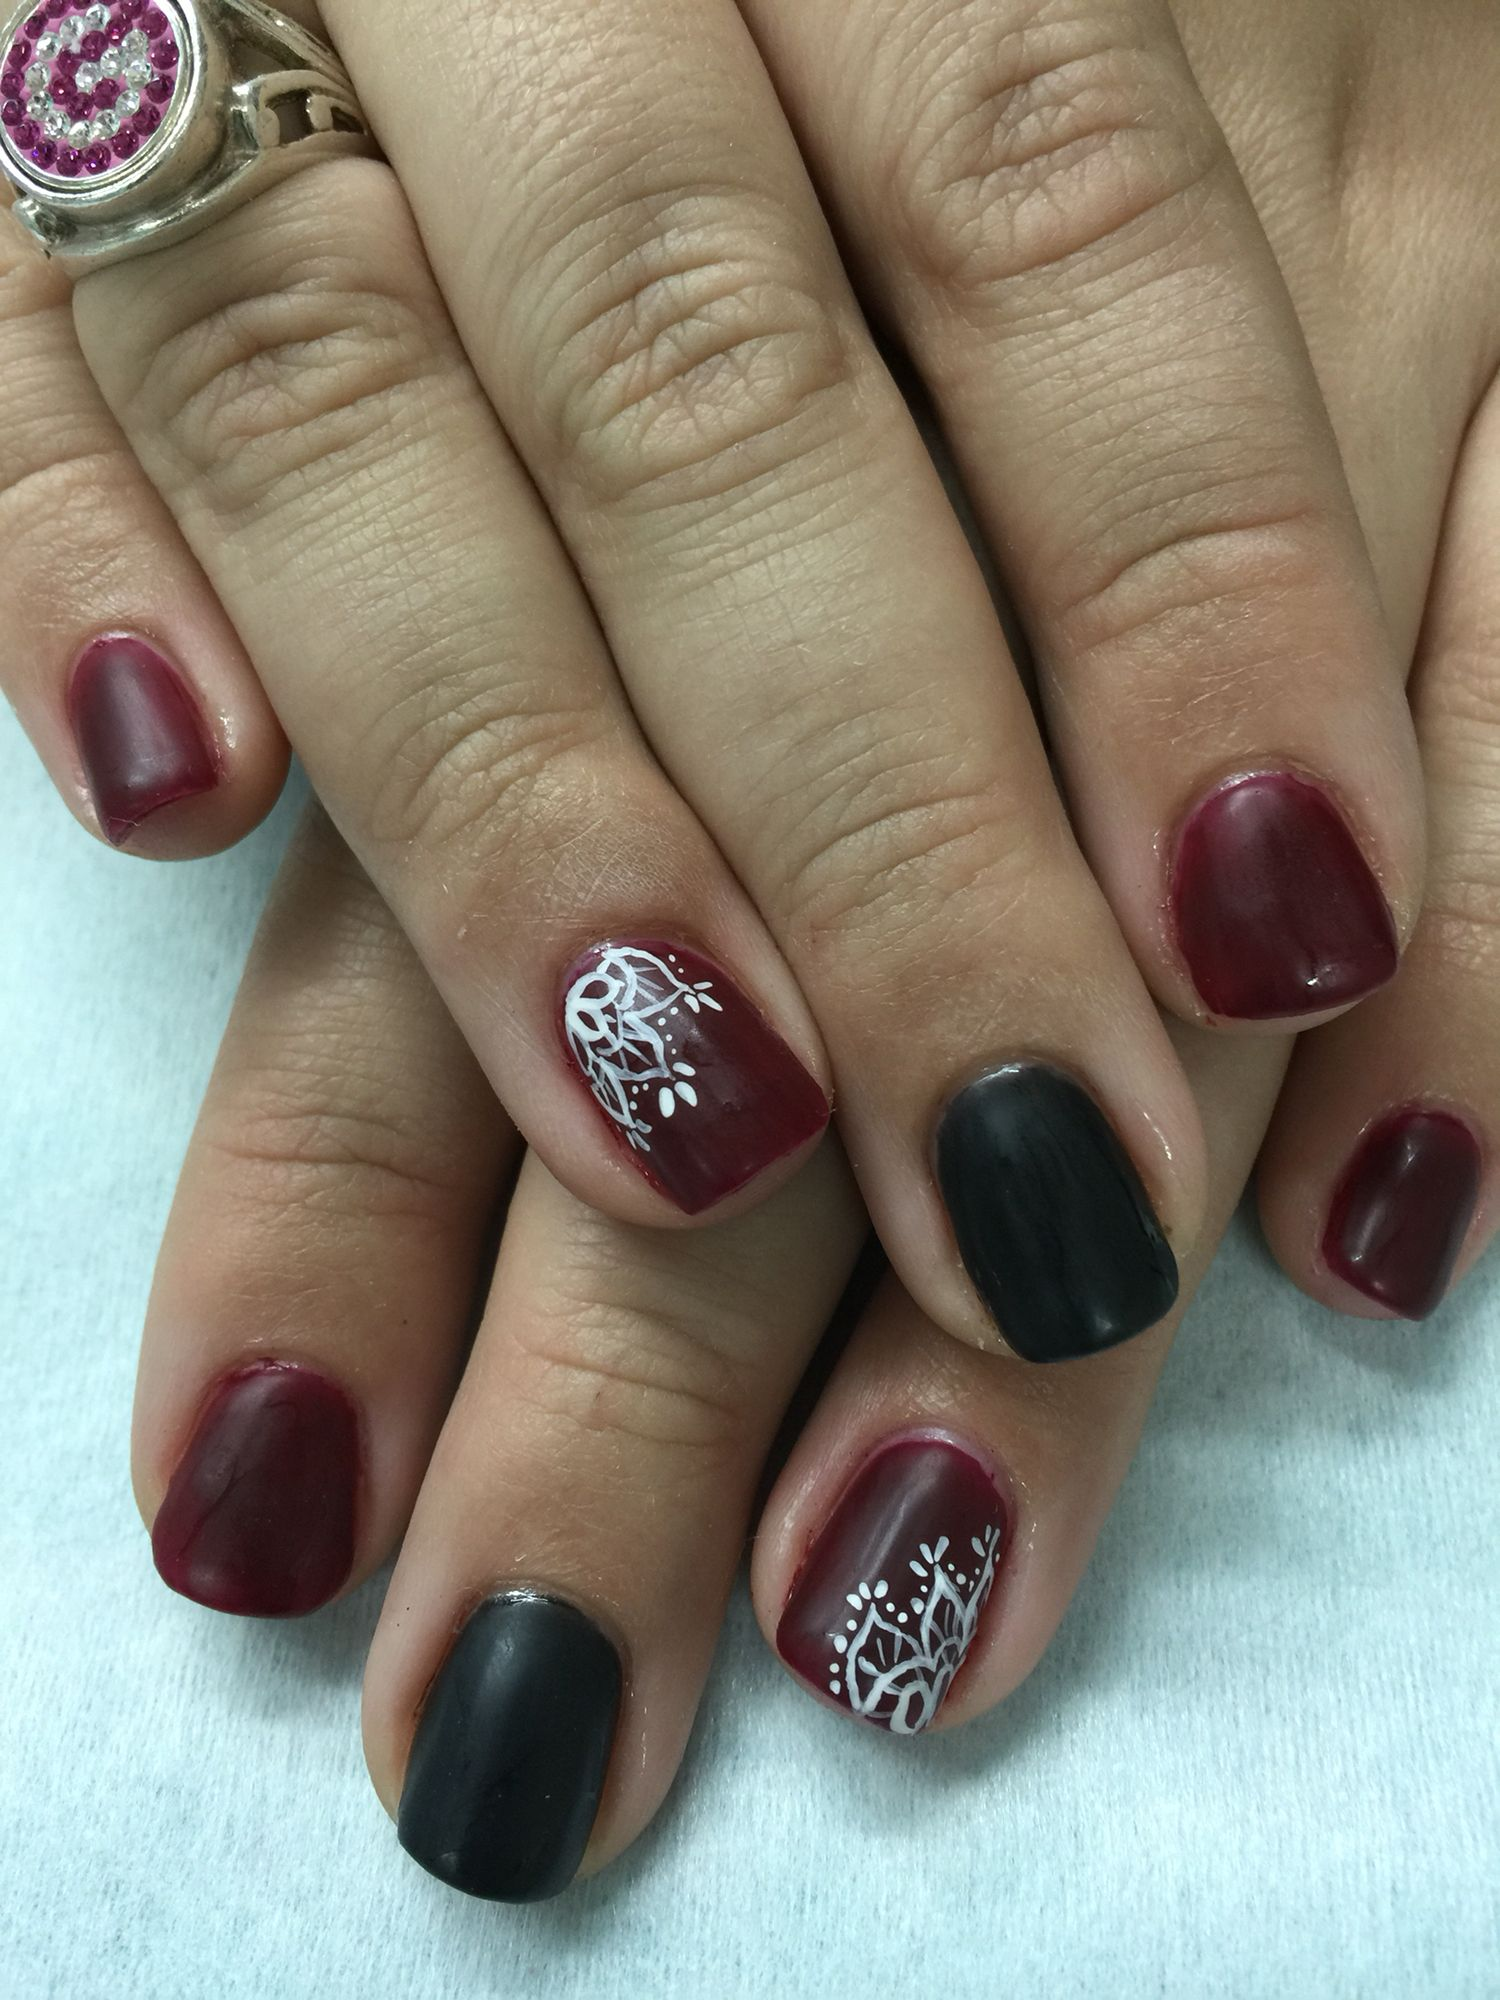 Matte Burgundy/Wine white lace gel polish over non-toxic odorless ...